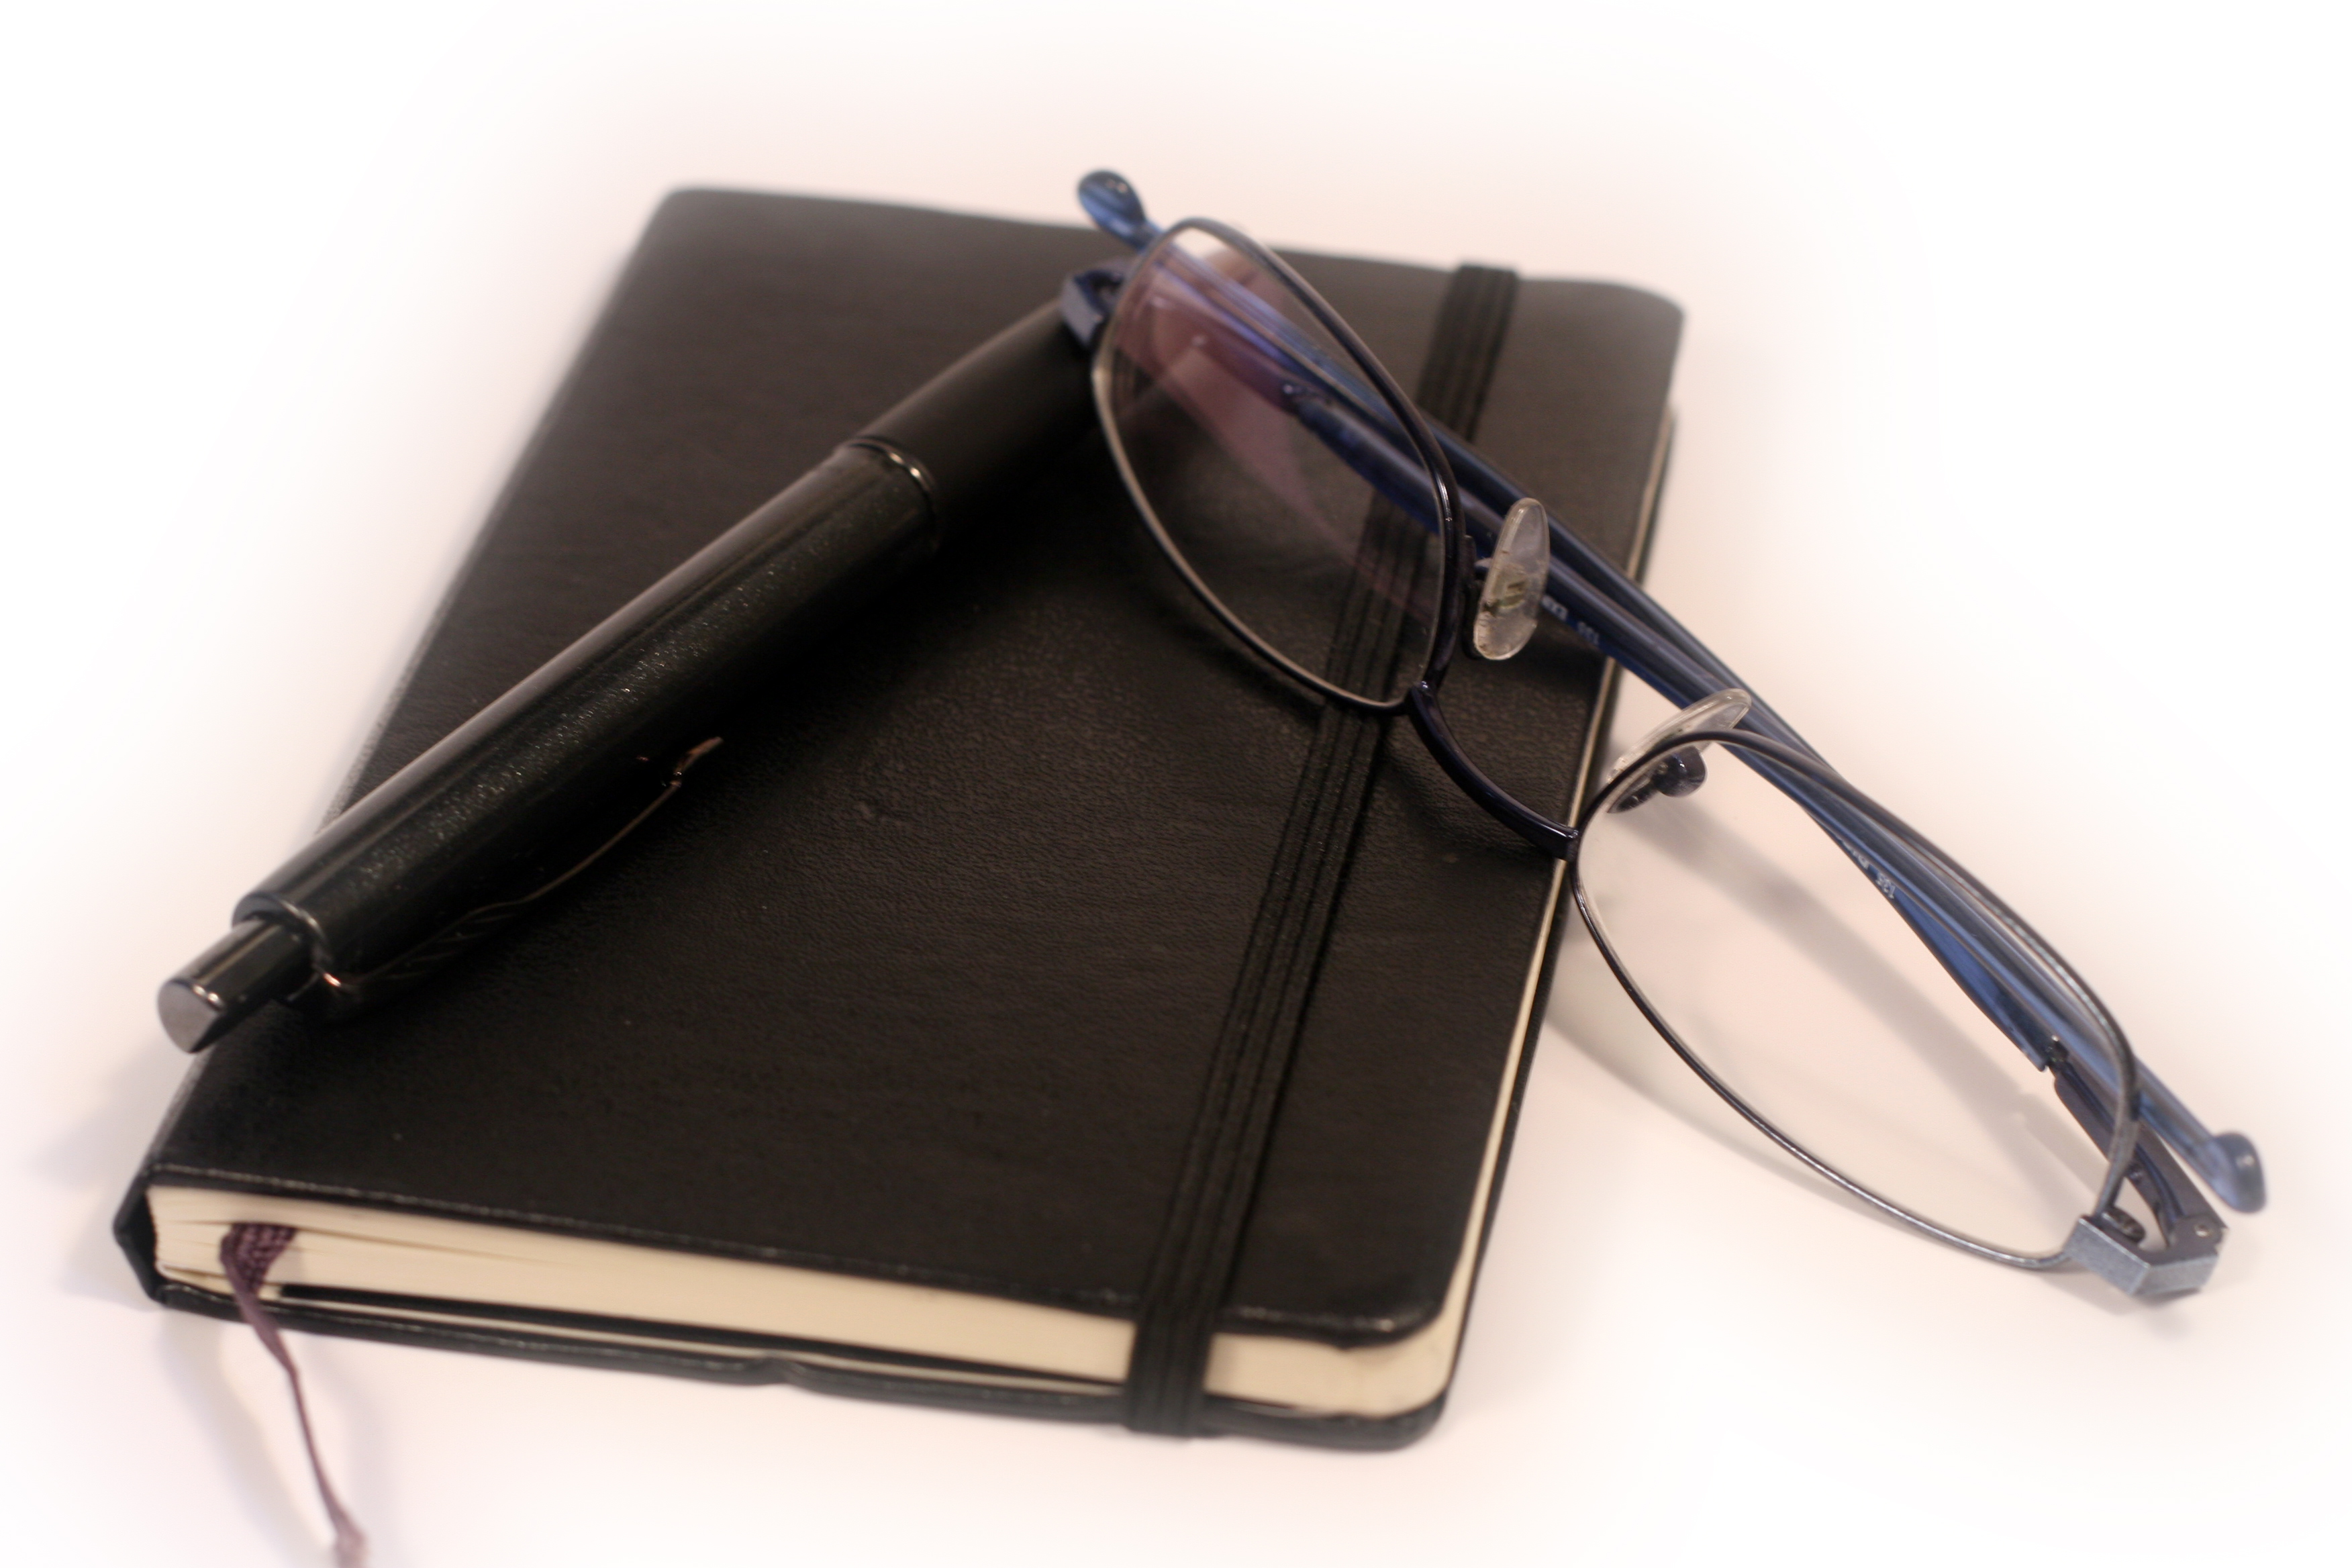 Pen Diary And Glasses Flickr Photo Sharing!. Full resolution  image, nominally Width 3504 Height 2336 pixels, image with #9B4D30.